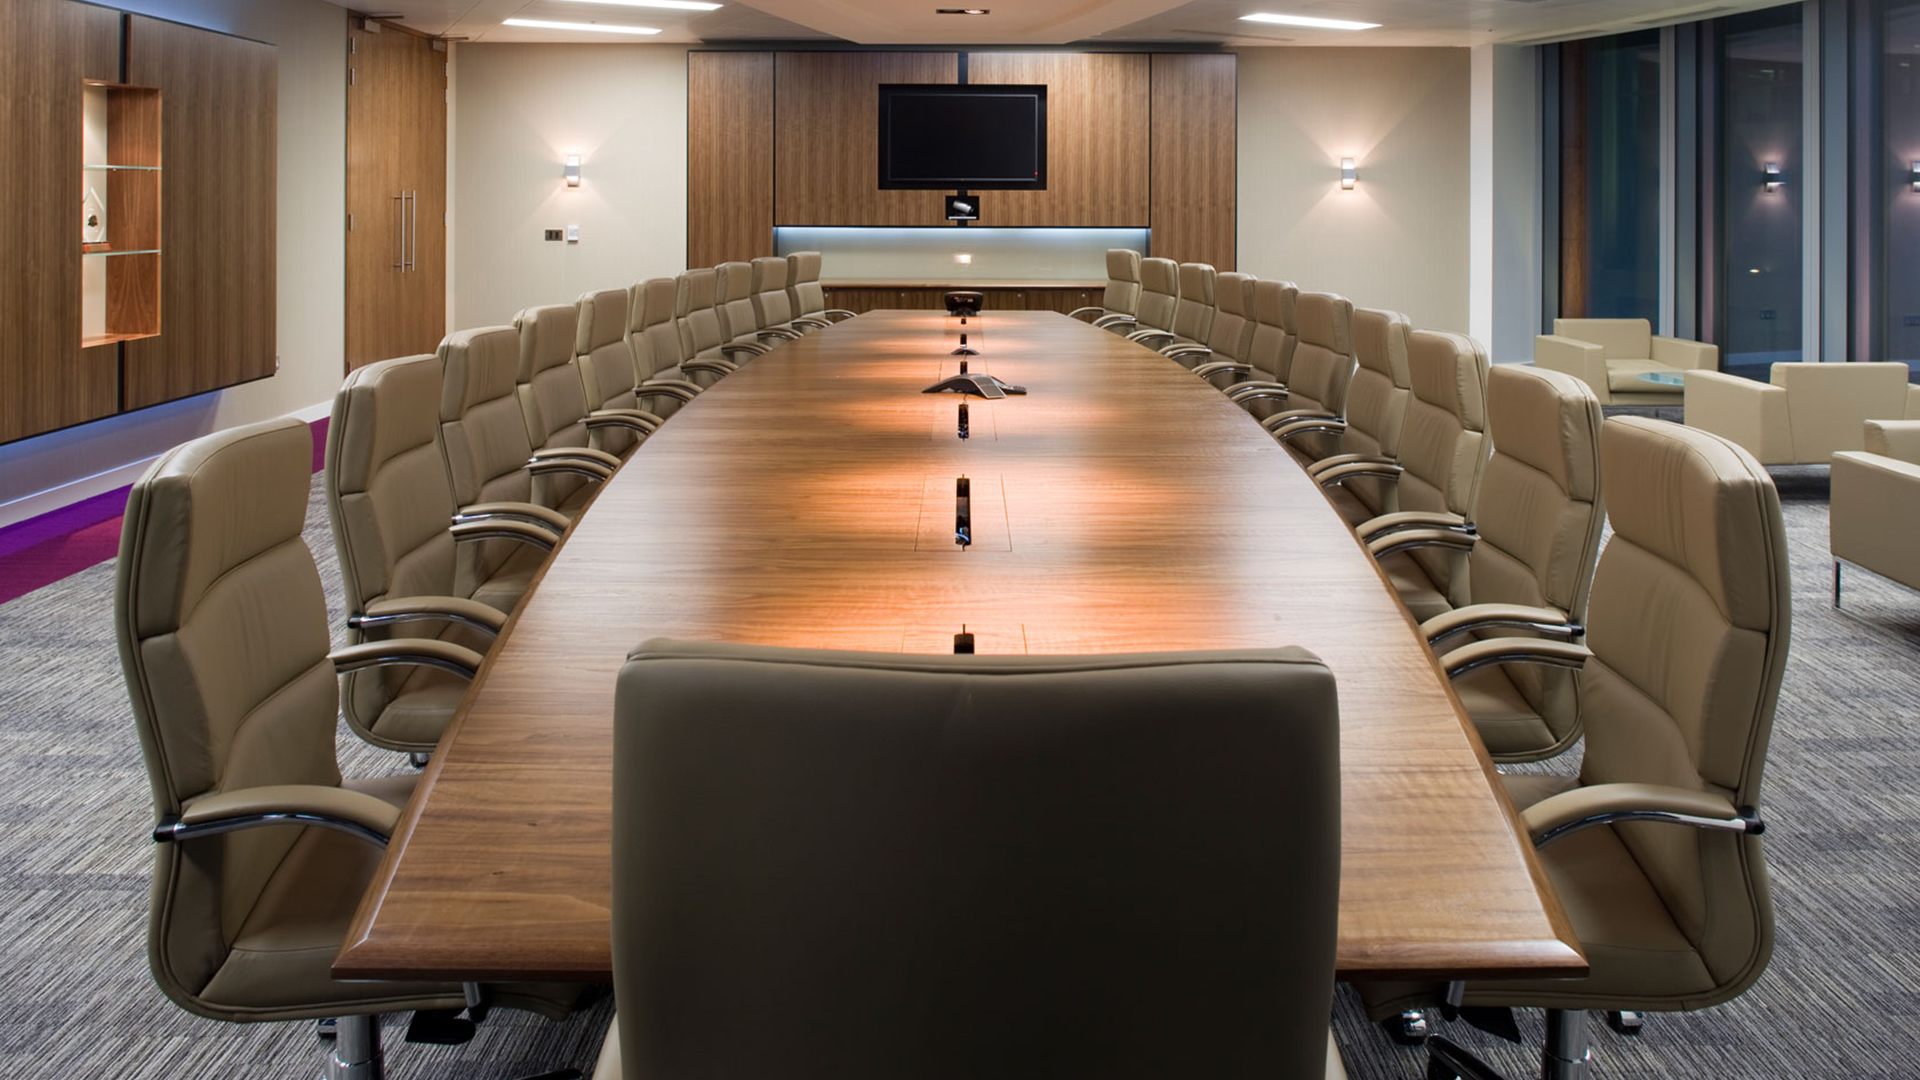 Ricoh executive boardroom. Virtual background to use on Zoom, Microsoft Teams, Skype, Google Meet, WebEx or any other compatible app.